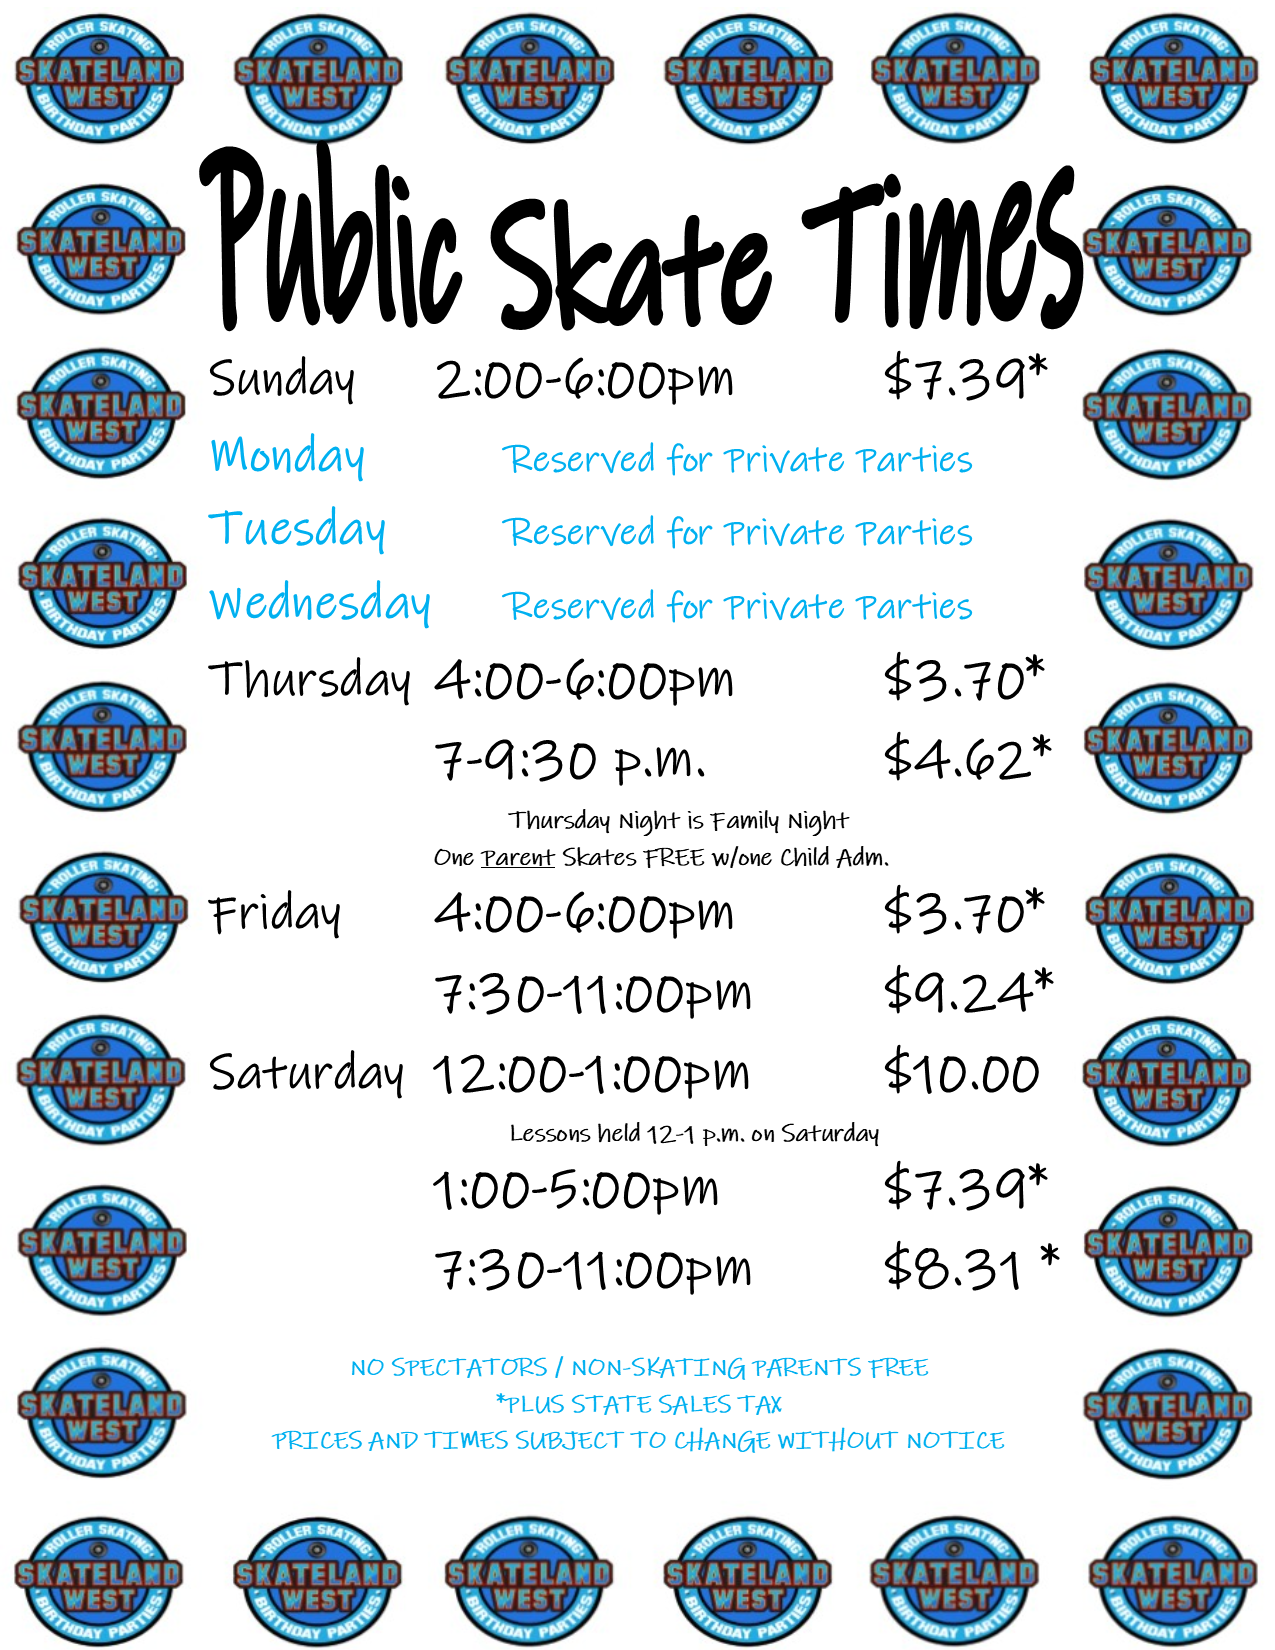 SkatelandWest Public Skate Hours FALL 2019